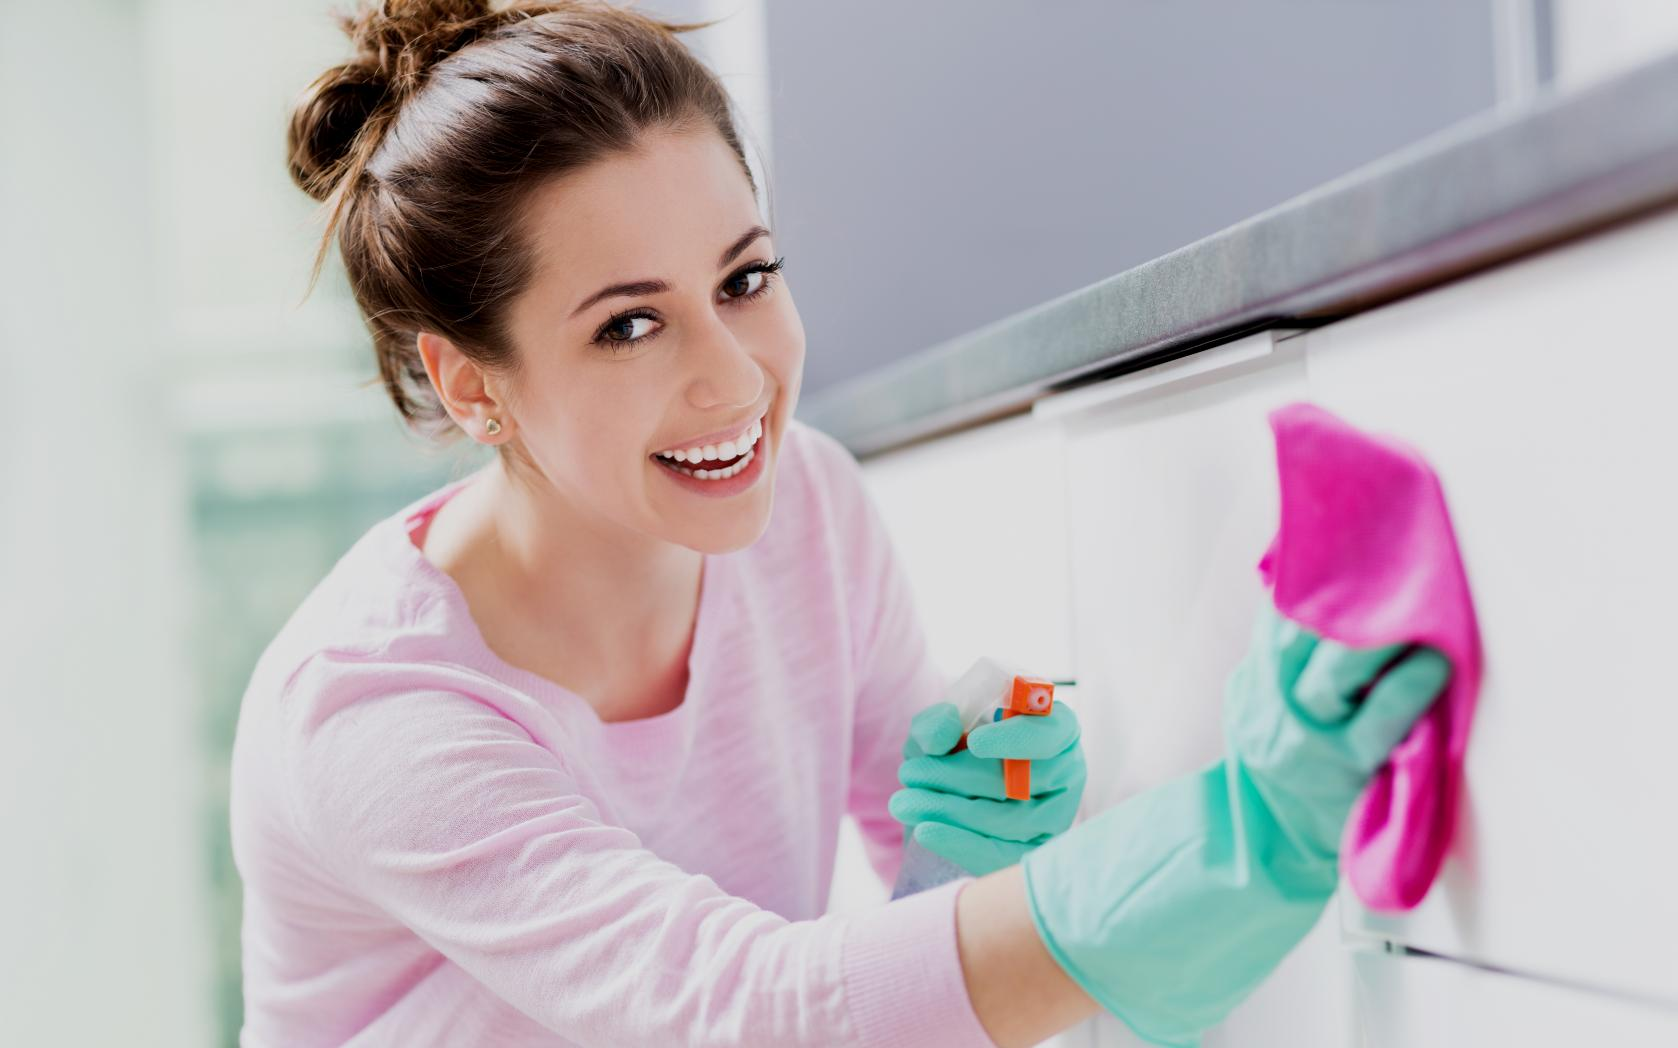 Special requirement for bond cleaning in Melbourne